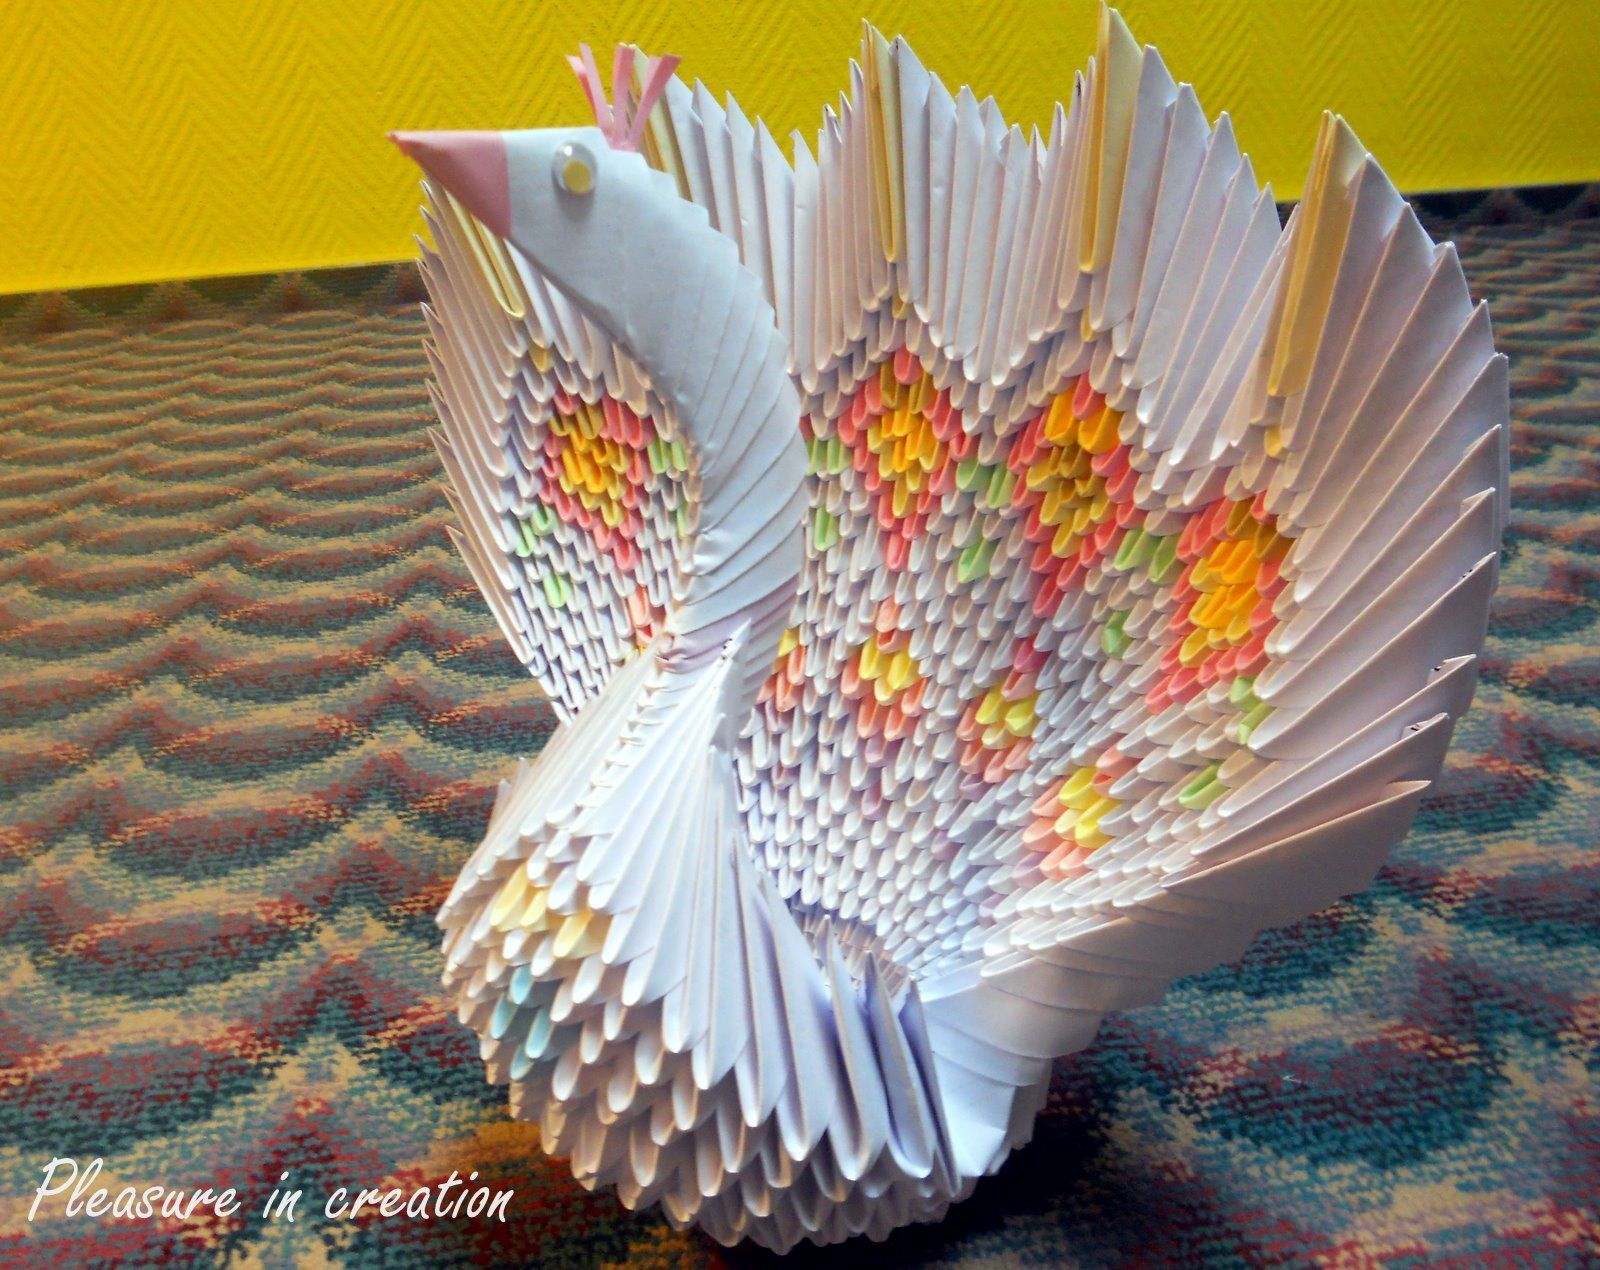 How To Make A Peacock With Paper-3d Origami Peacock With 19 Tails ... | 1270x1600